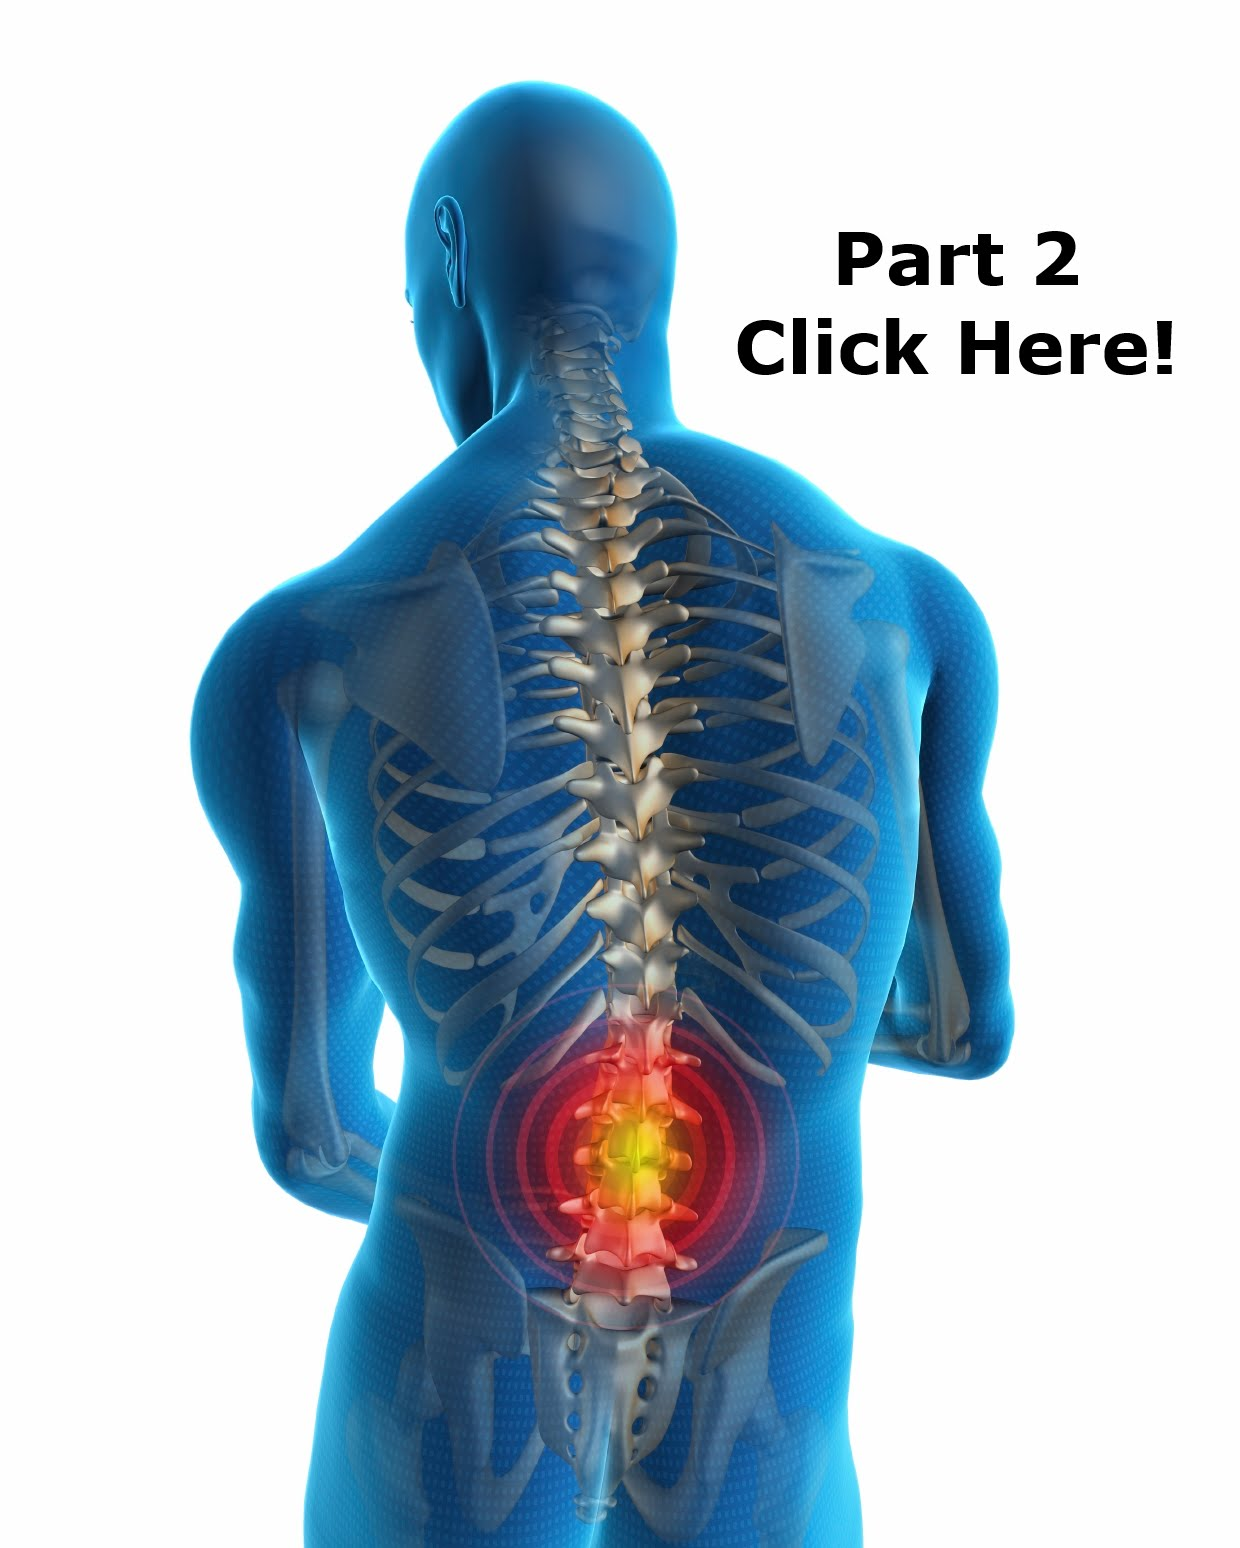 https://www.facebook.com/notes/atr-sports-therapy-the-sports-injury-clinic/2-low-back-pain-the-myths-potential-causes-and-key-concepts-in-its-treatment/727686940631857